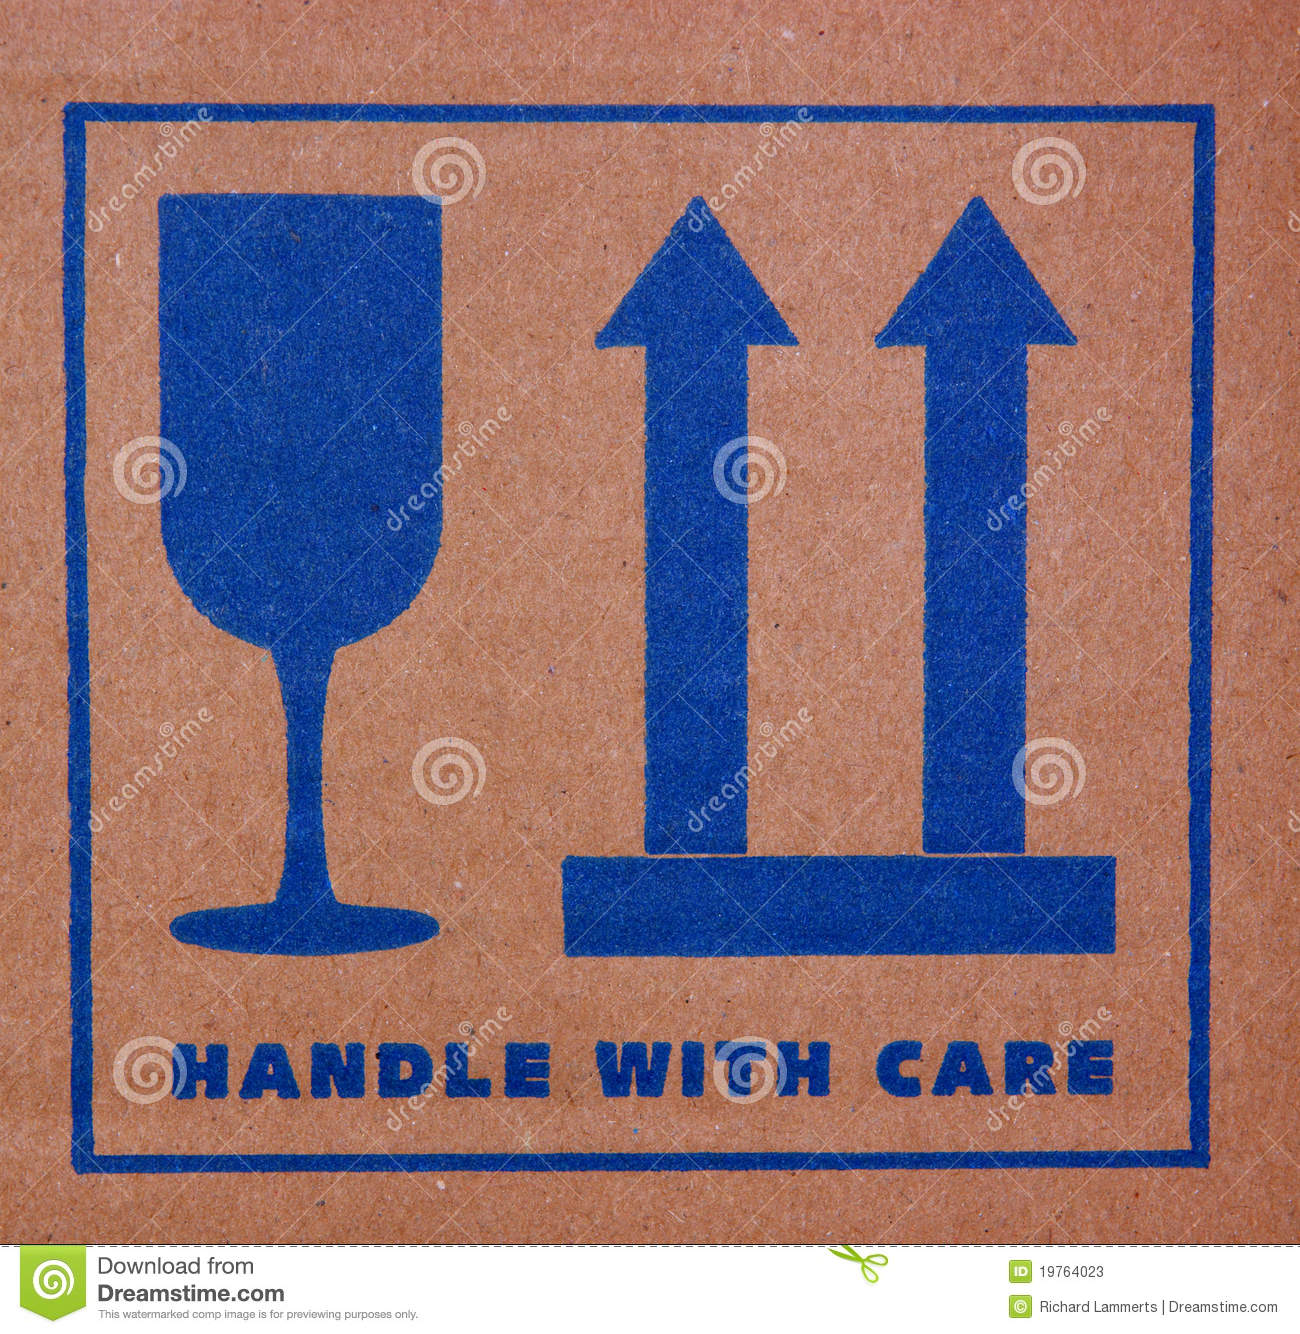 Handle with care symbol stock image image of handle 19764023 handle with care symbol buycottarizona